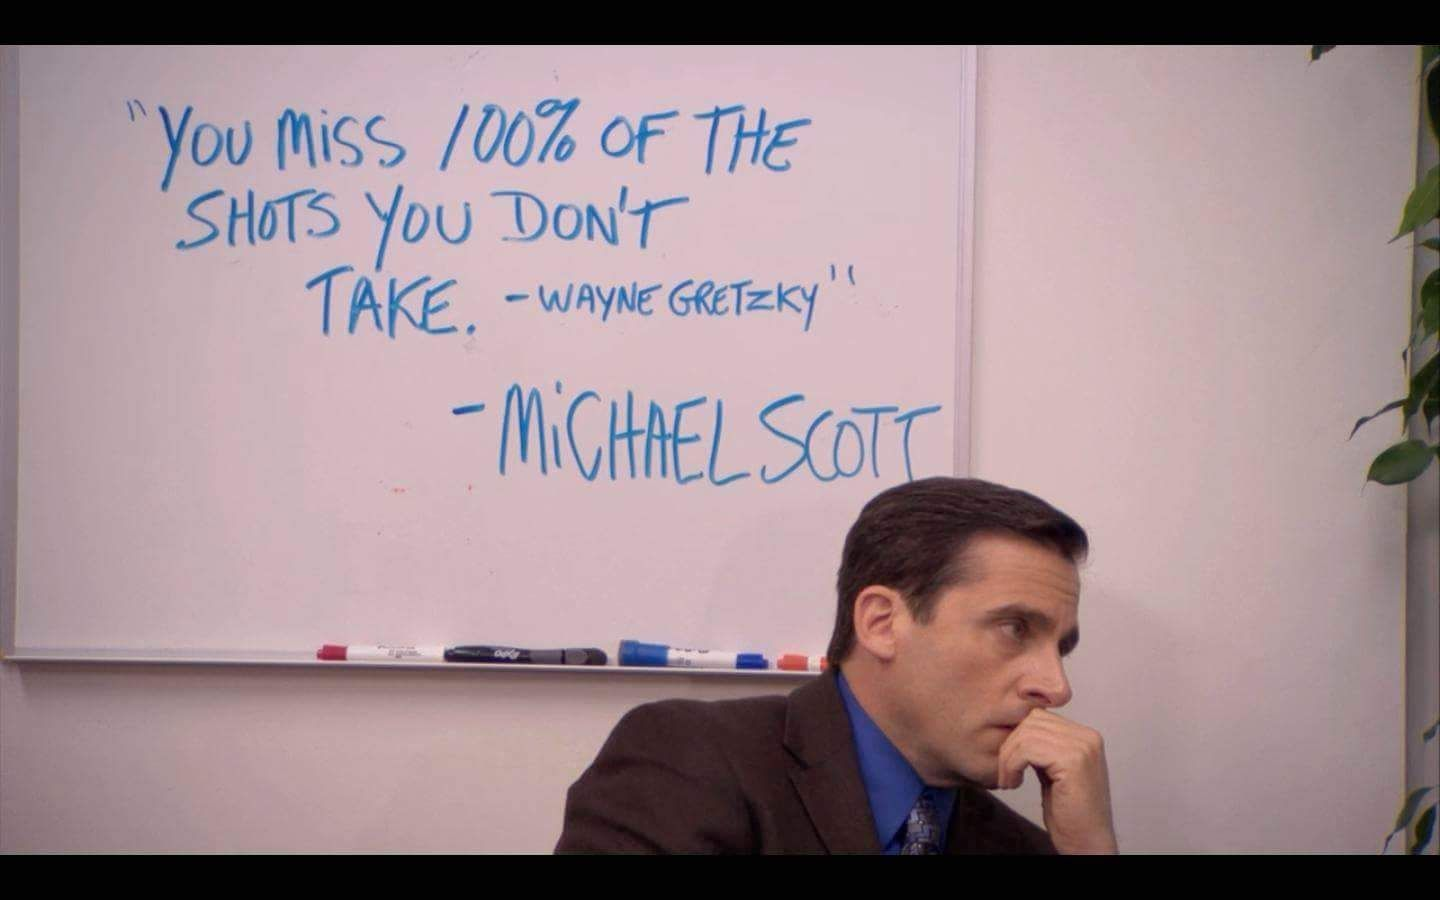 My 2 favorite things: motivational quotes and The Office ...